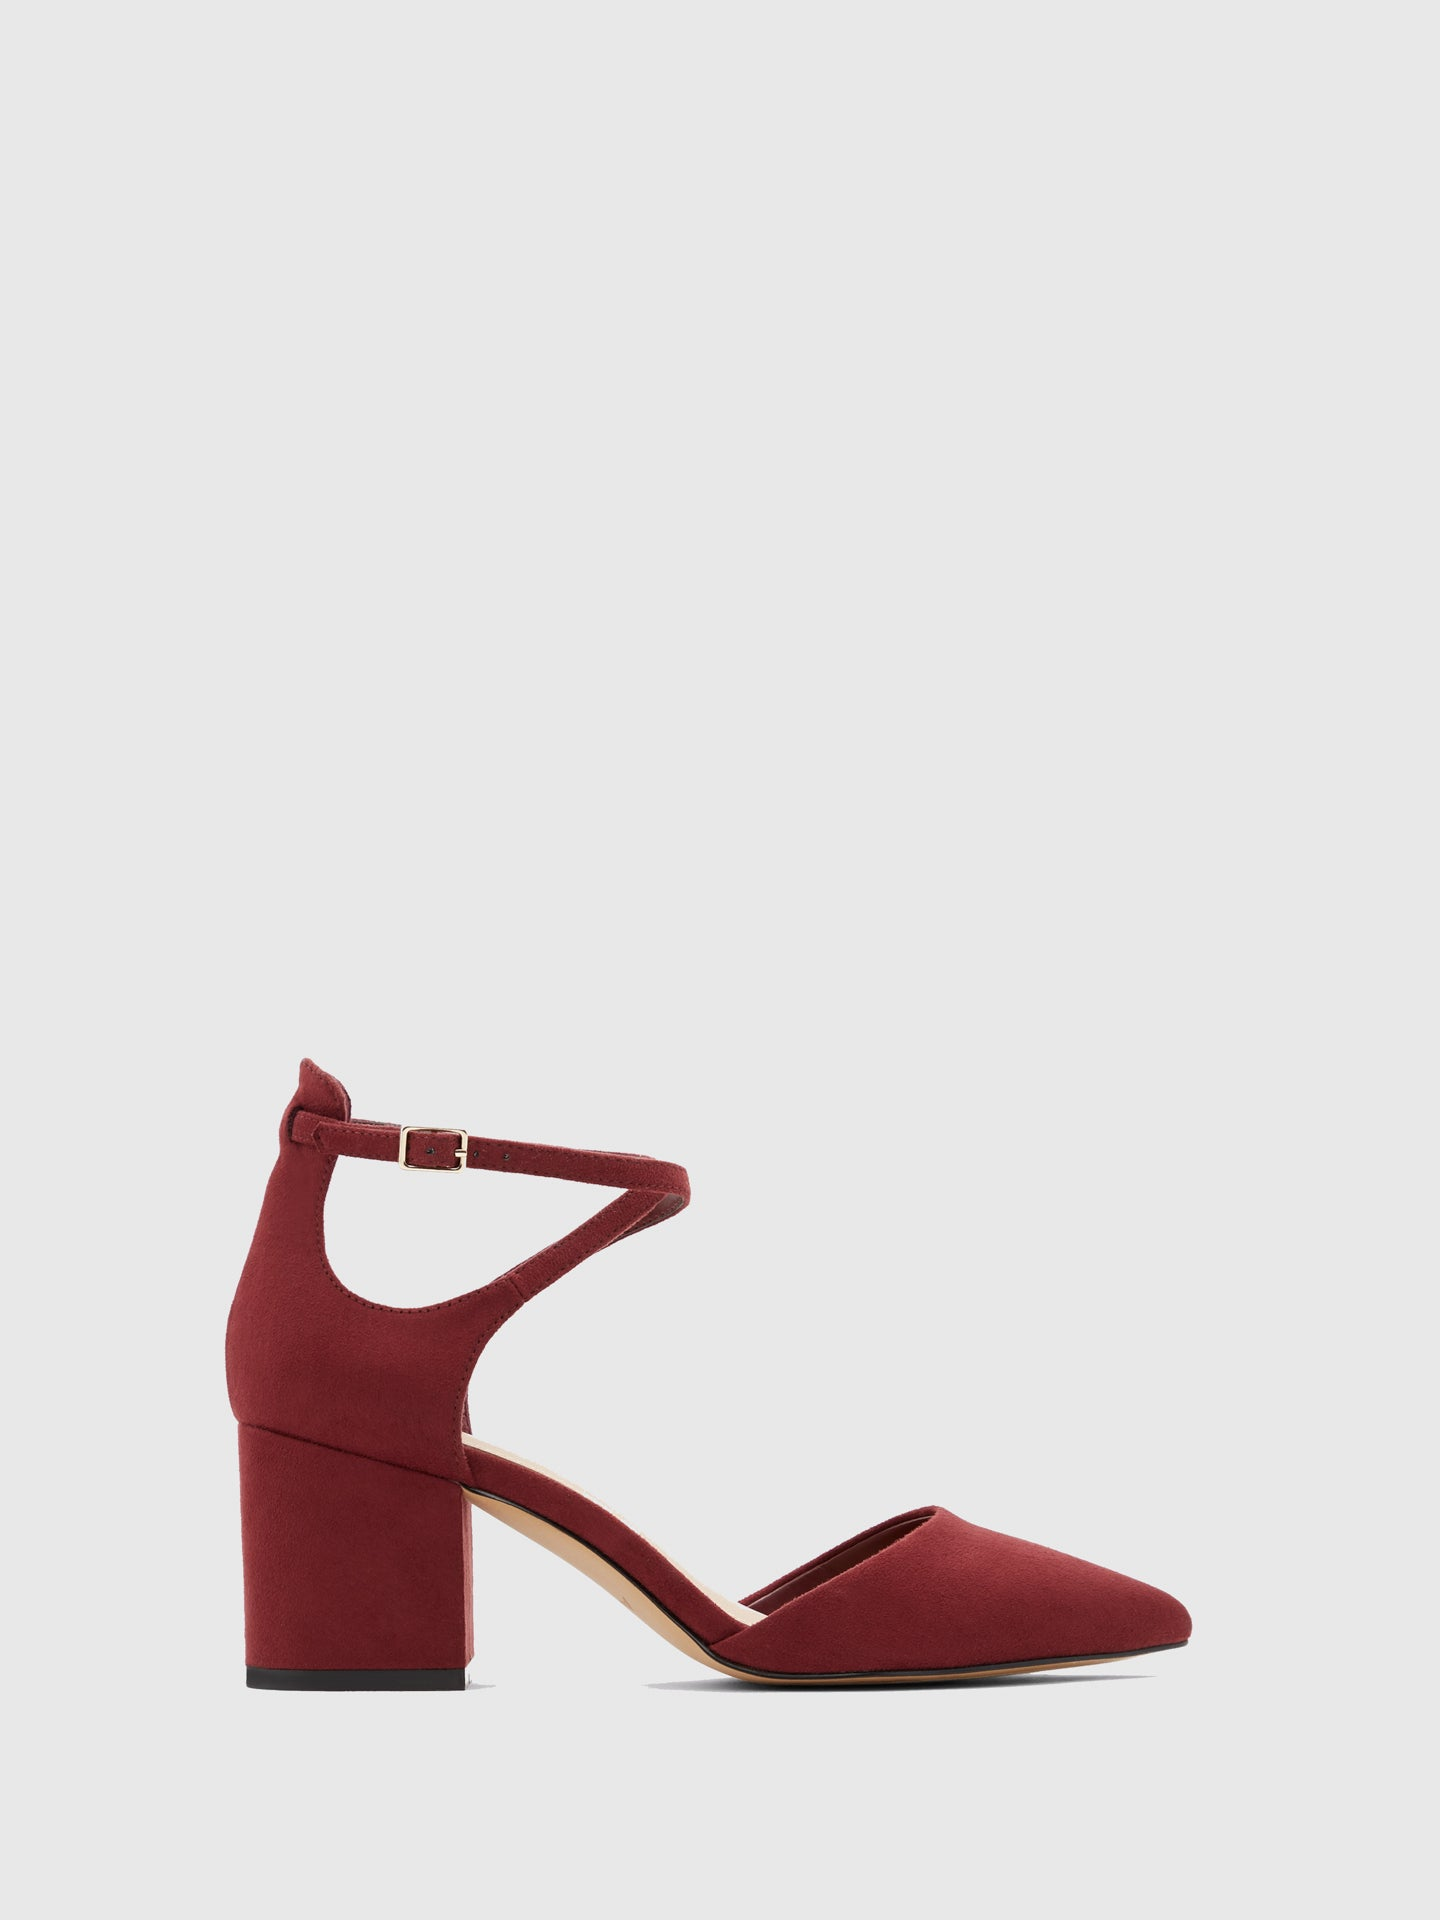 Aldo DarkRed Sling-Back Pumps Shoes